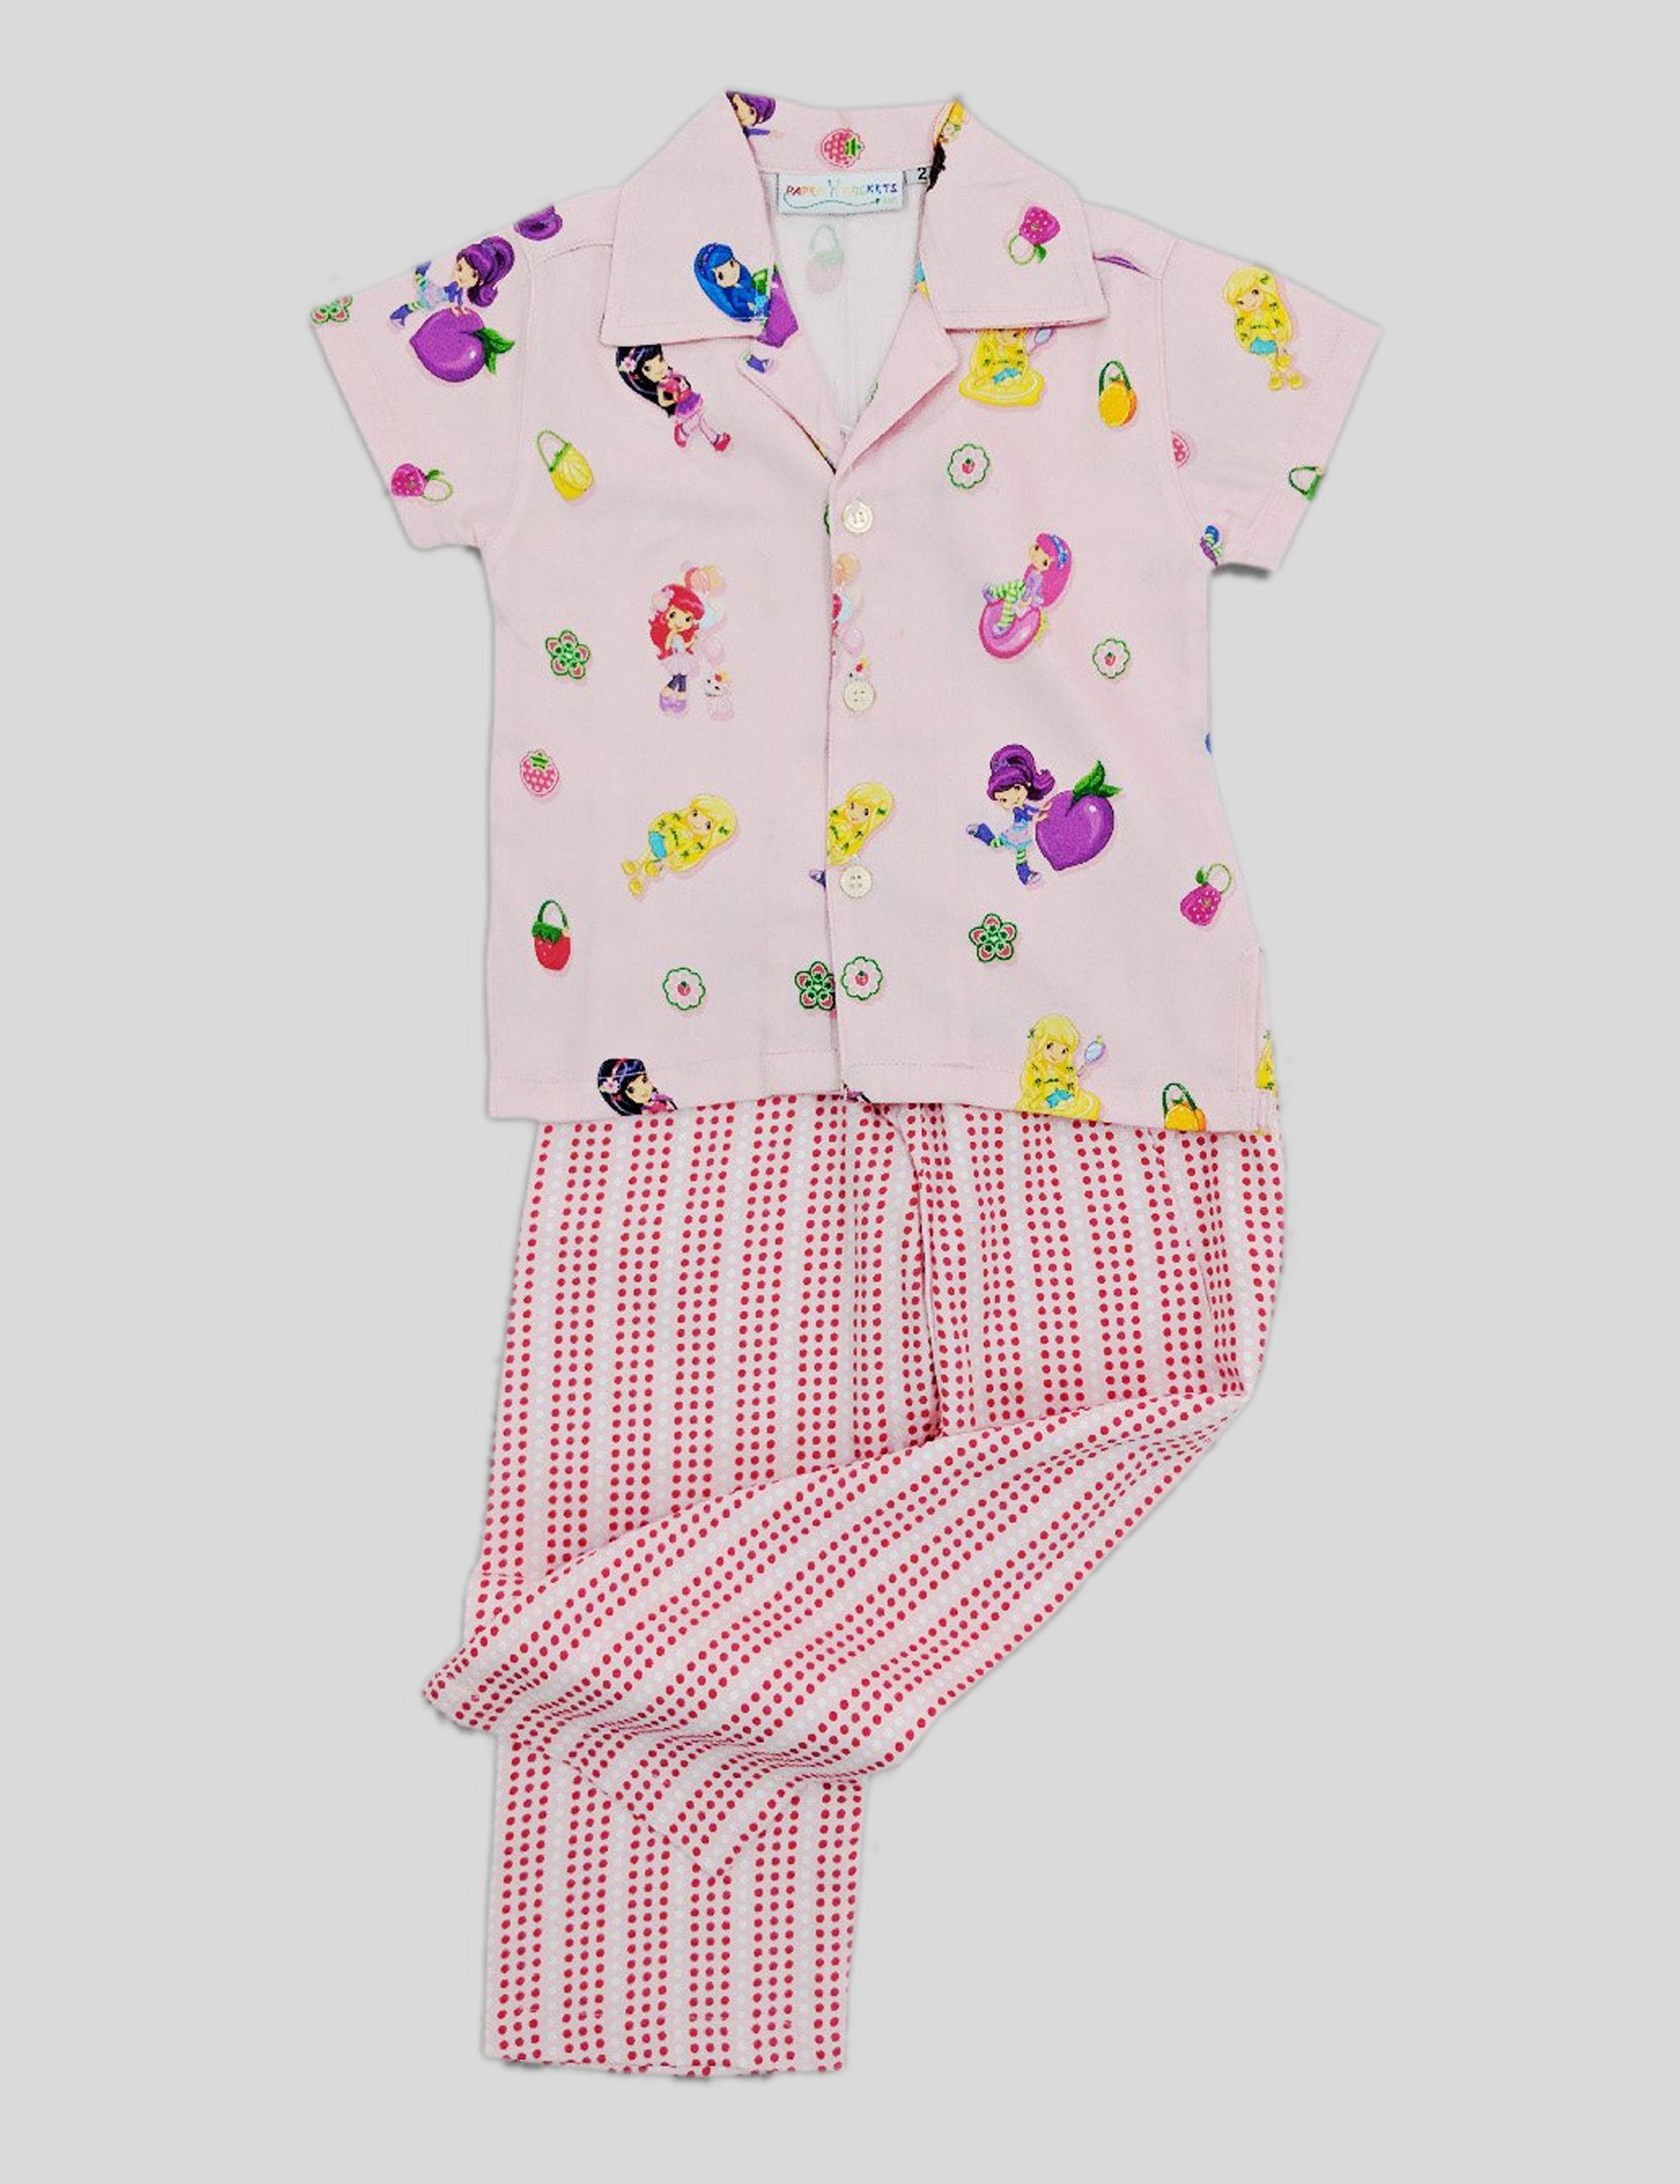 Fruity Fairies Print Nightwear in Multi-Colour for Girls (Half Sleeves)